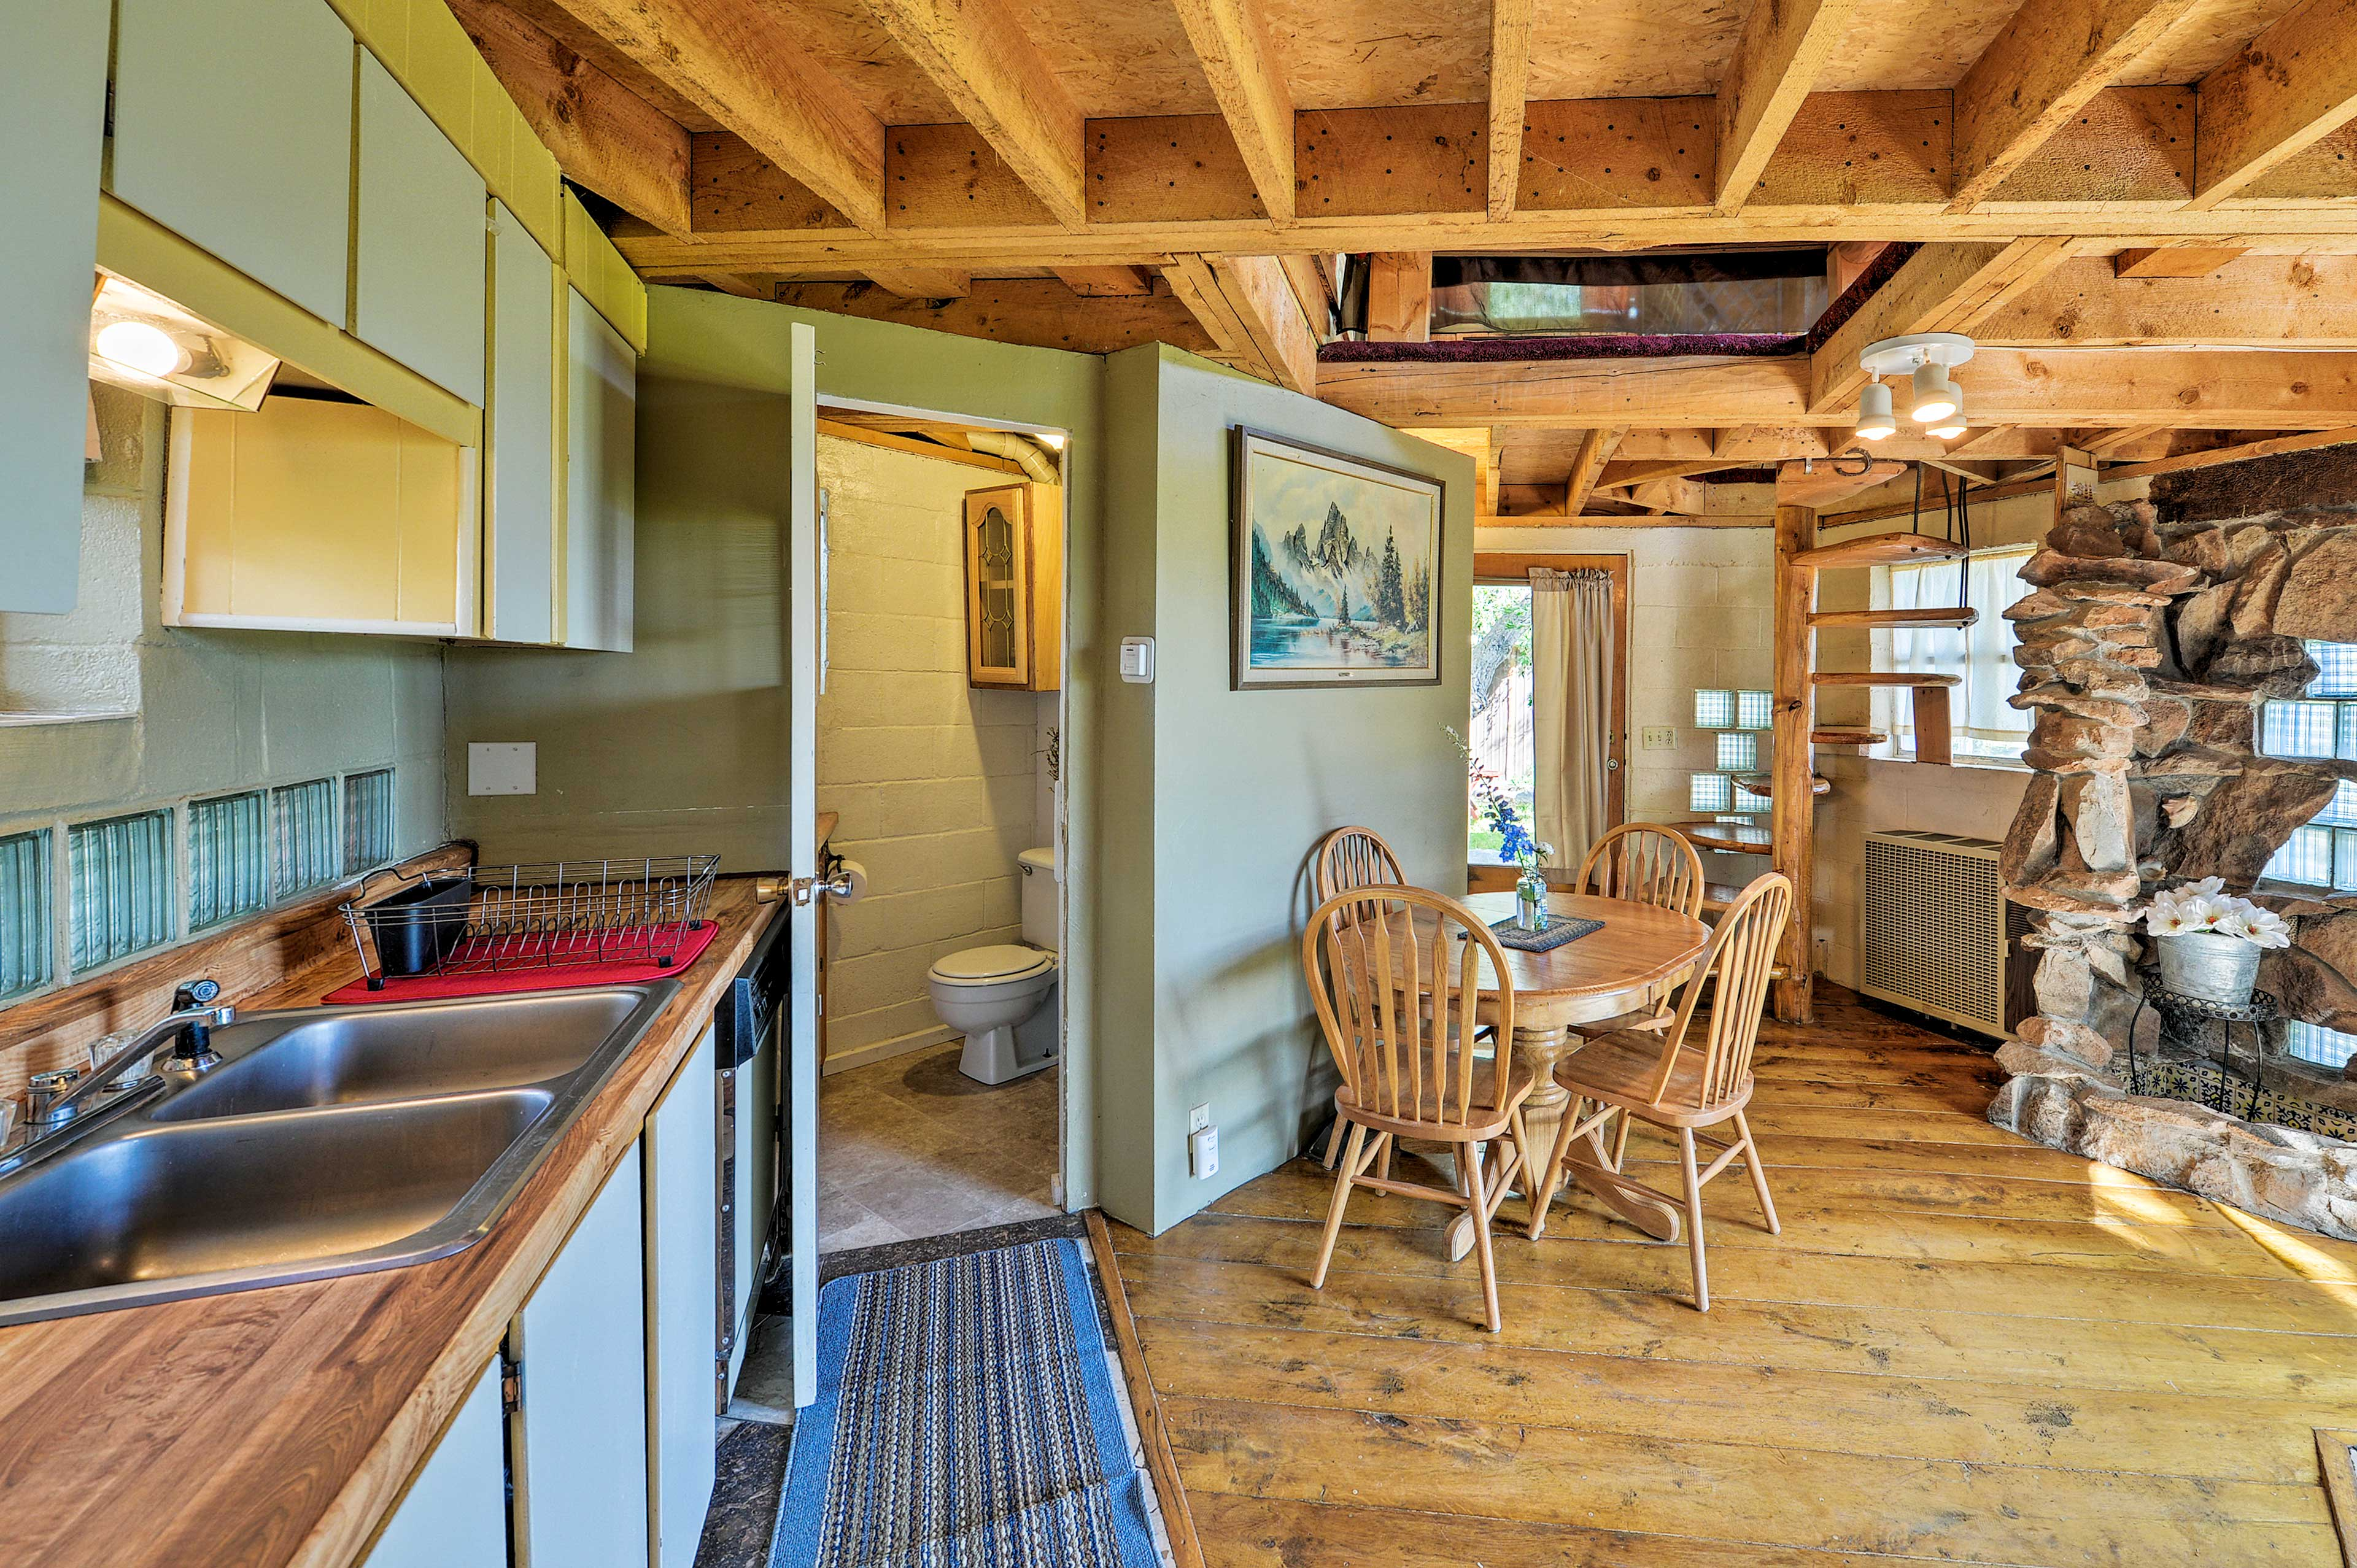 Cook up a meal for two in the cozy kitchen.